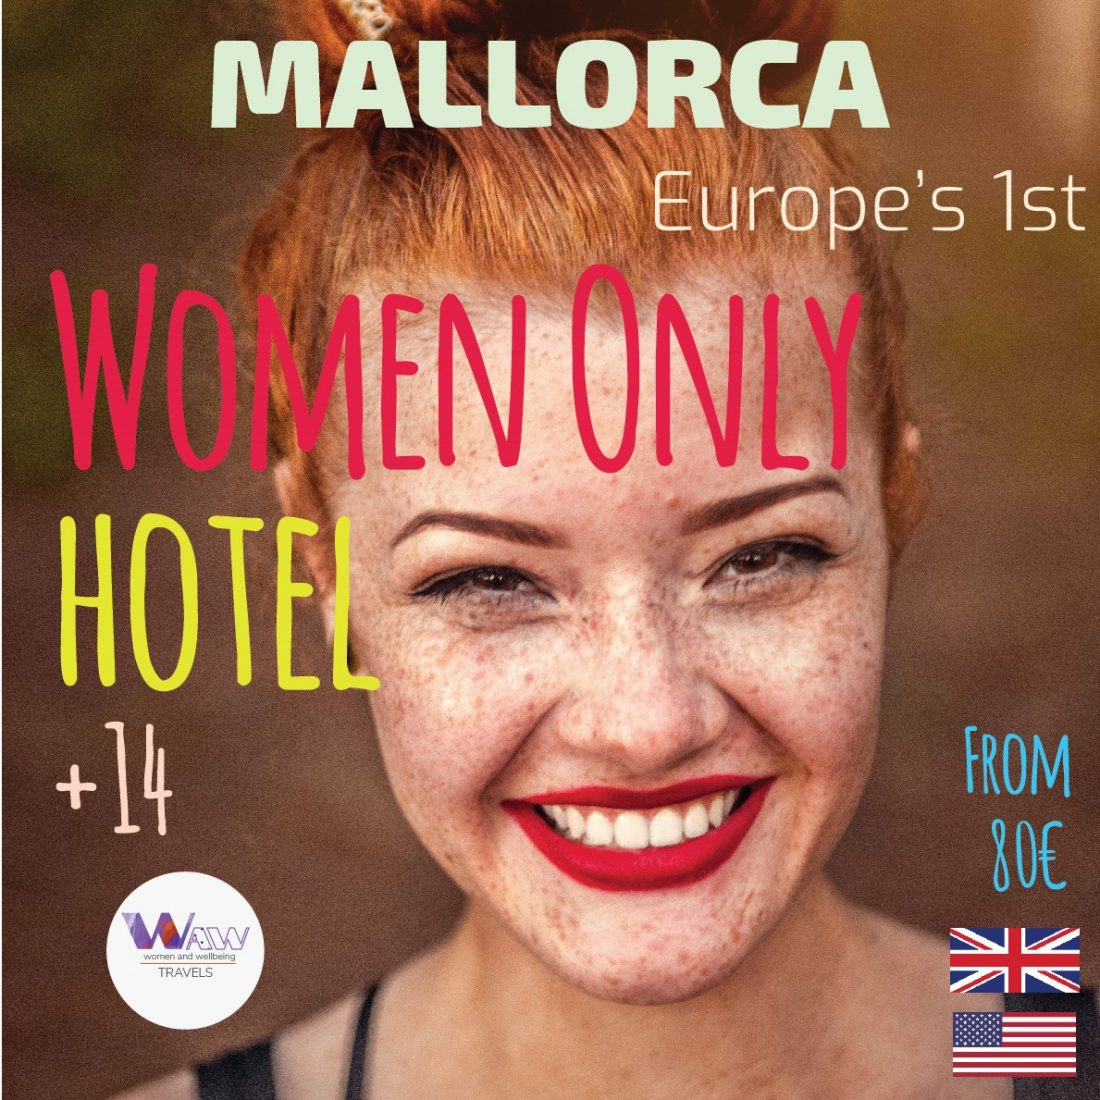 waw_travels_mallorca_woman_only_hotel_UK